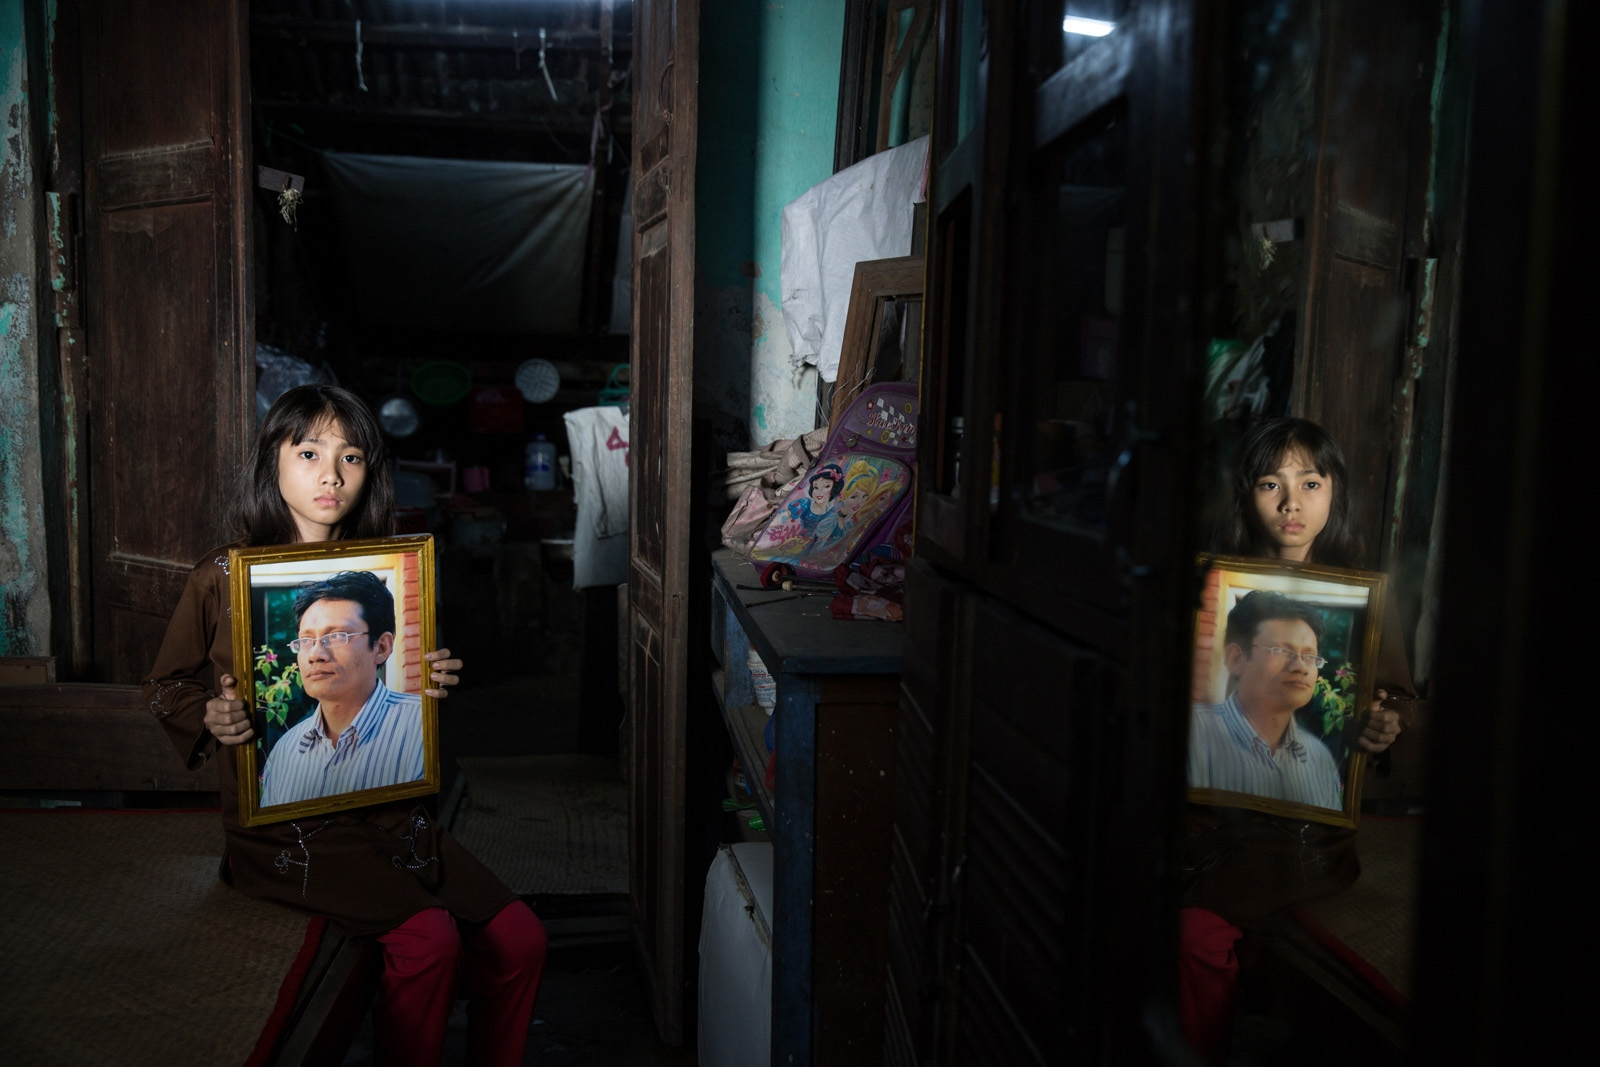 "Daughter of arbitrarily detained Zaw Min Htwe, 41, holds her father's portrait at the back of their family shop. Myanmar military intelligence arrested Zaw Min Htwe, who is an artist, at his home in Mandalay on August 21, 2014 while he was drinking his tea. The military intelligence officers told his spouse and daughters that they would ""return him before his tea get cold."" According to documents submitted to the court, the Military Intelligence officers interrogated him continuously for seven days and deprived him of sleep, water, and food. On November 29, 2016, the Amarapura Township Court in Mandalay sentenced Zaw Min Htwe to five years' imprisonment with hard labor under section 5(L) of the Emergency Provisions Act and Section 505(C) of the Myanmar Penal Code. On December 20, the Mandalay Township Court sentenced him to an additional three years' imprisonment under Section 17(1) of the Unlawful Associations Act. Two days later, on December 22, the Mandalay District Court imposed a life sentence on him for high treason under Section 122 of the Myanmar Penal Code and an additional sentence of seven years' imprisonment for alleged violations of Section 52(a) of the Counterterrorism Law on December 28. The sentences relate to accusations that Zaw Min Htwe carried out the Islamic militant activities in Myanmar, despite the government's failure to present evidence of the Zaw Min Htwe's connection to the militant group. Zaw Min Htwe is currently detained in Mandalay Obo prison."